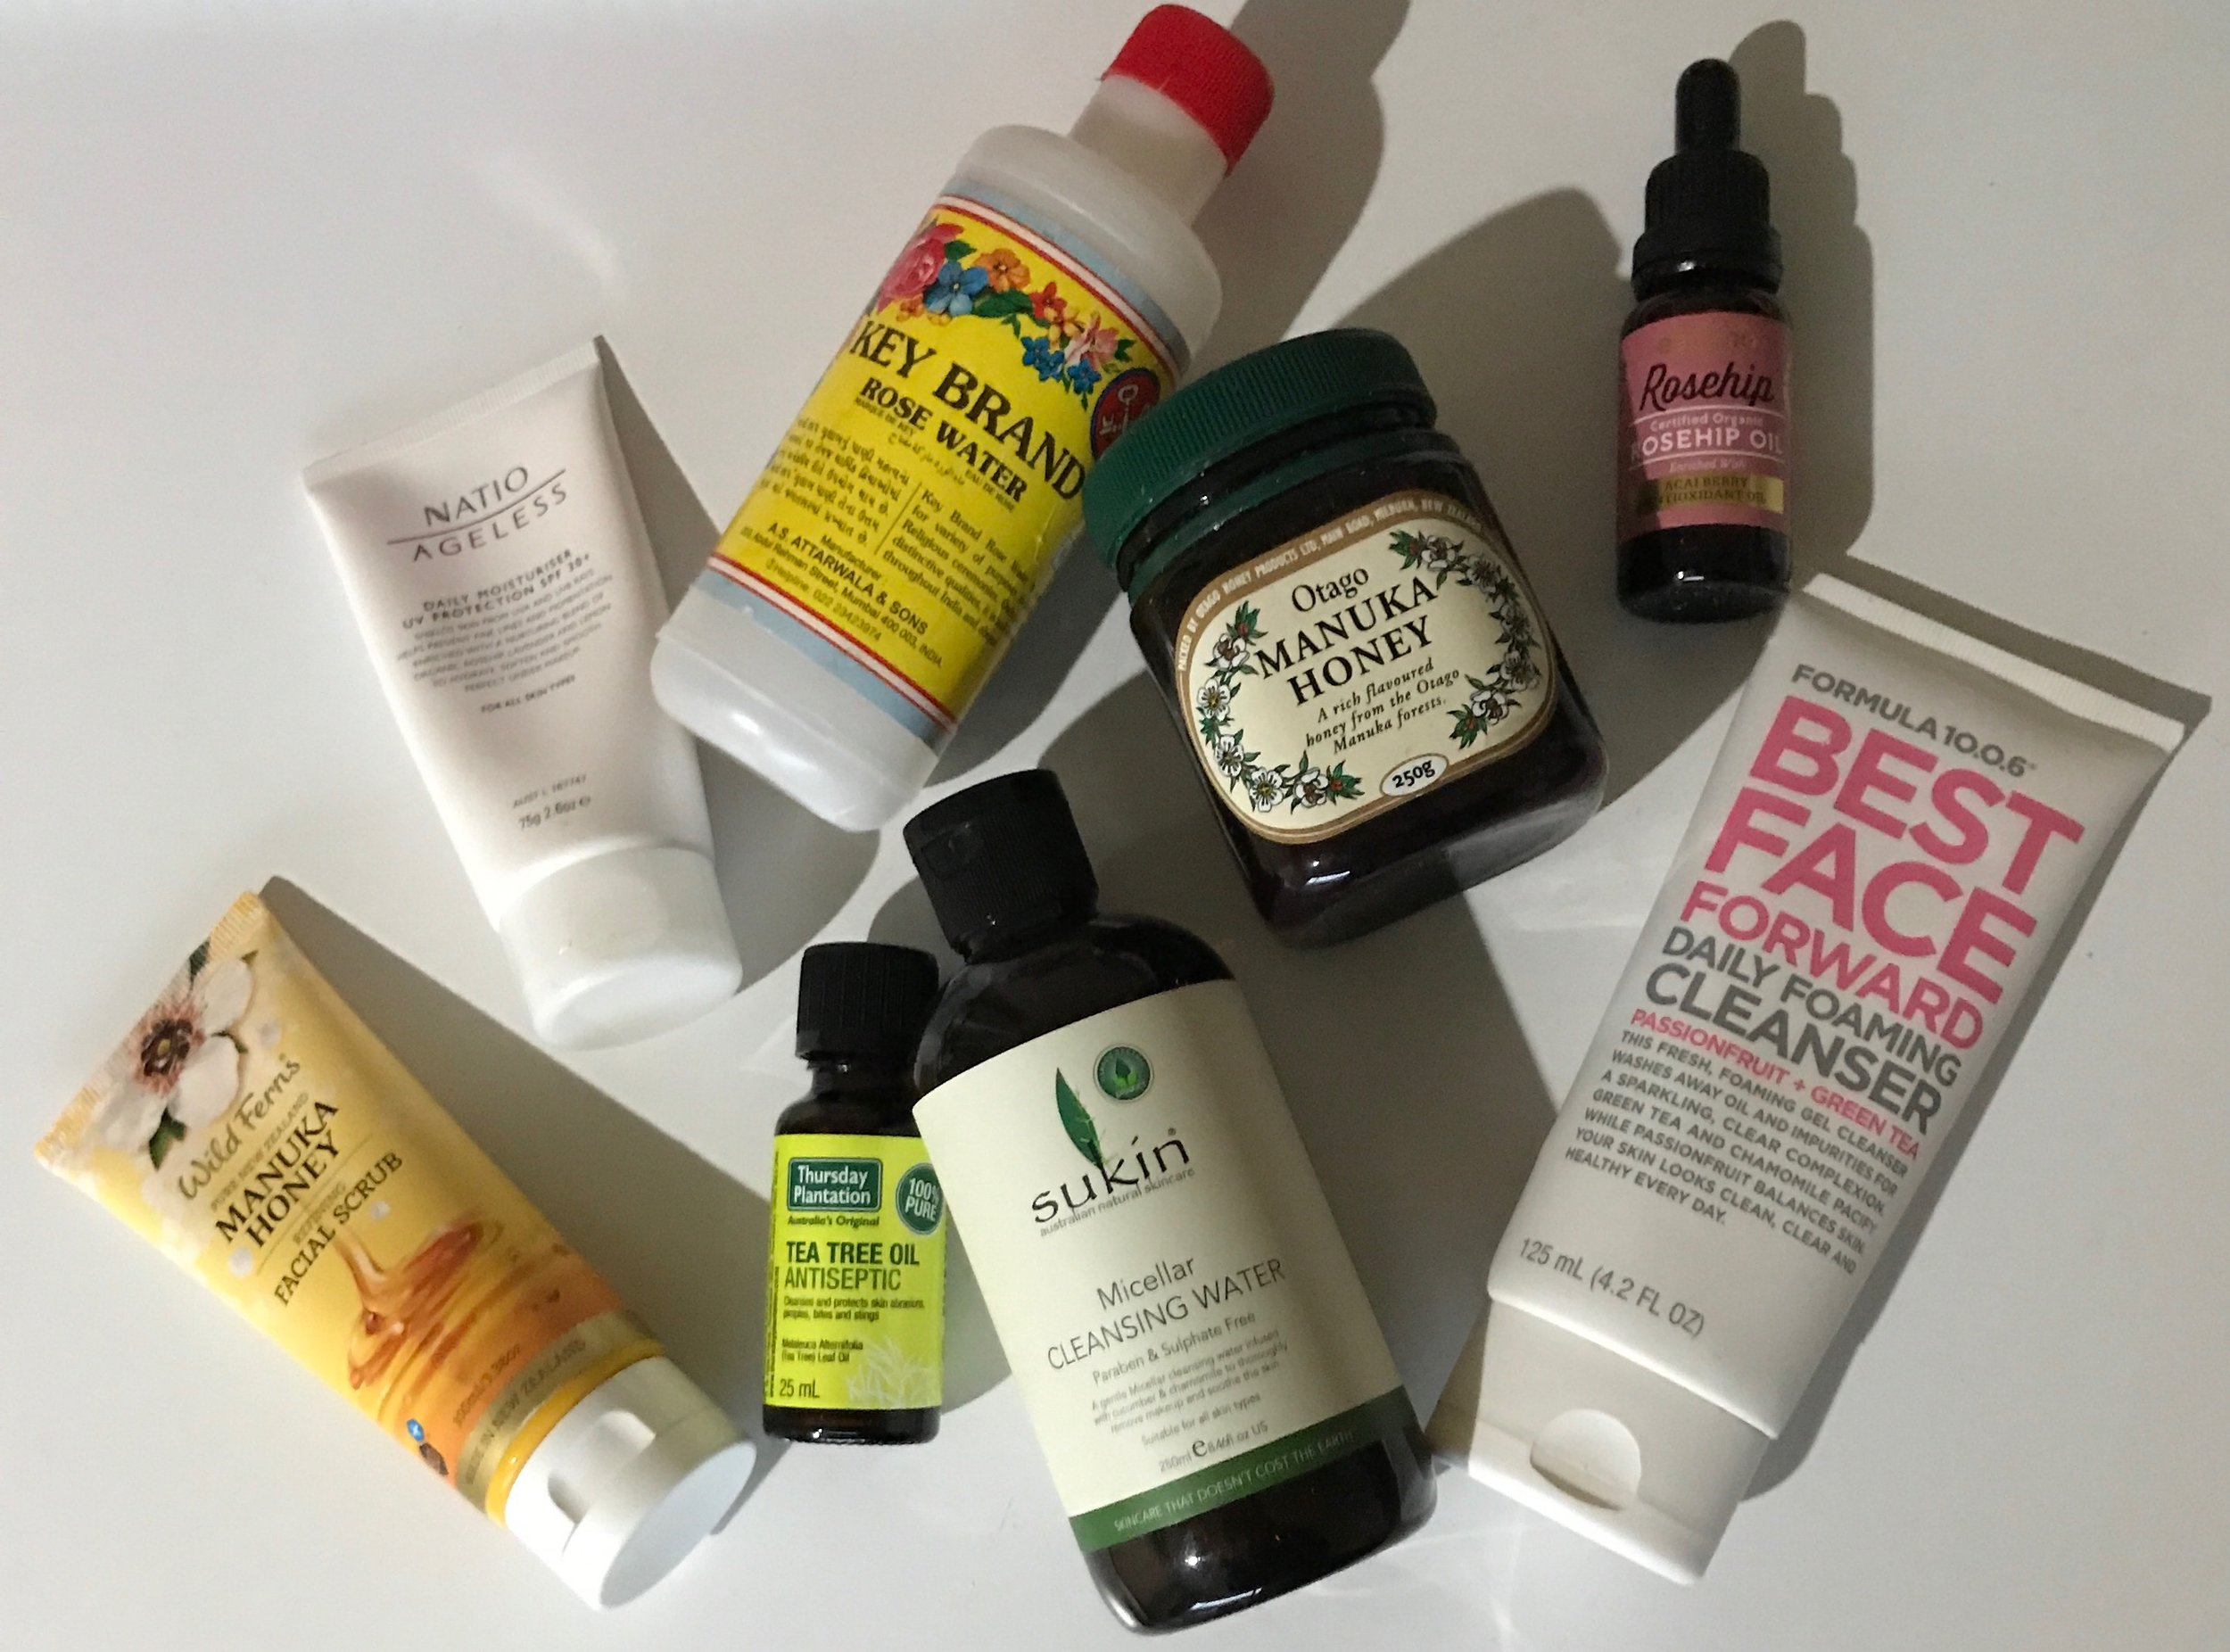 Products that I love to use that you can find at pharmacies or supermarkets.